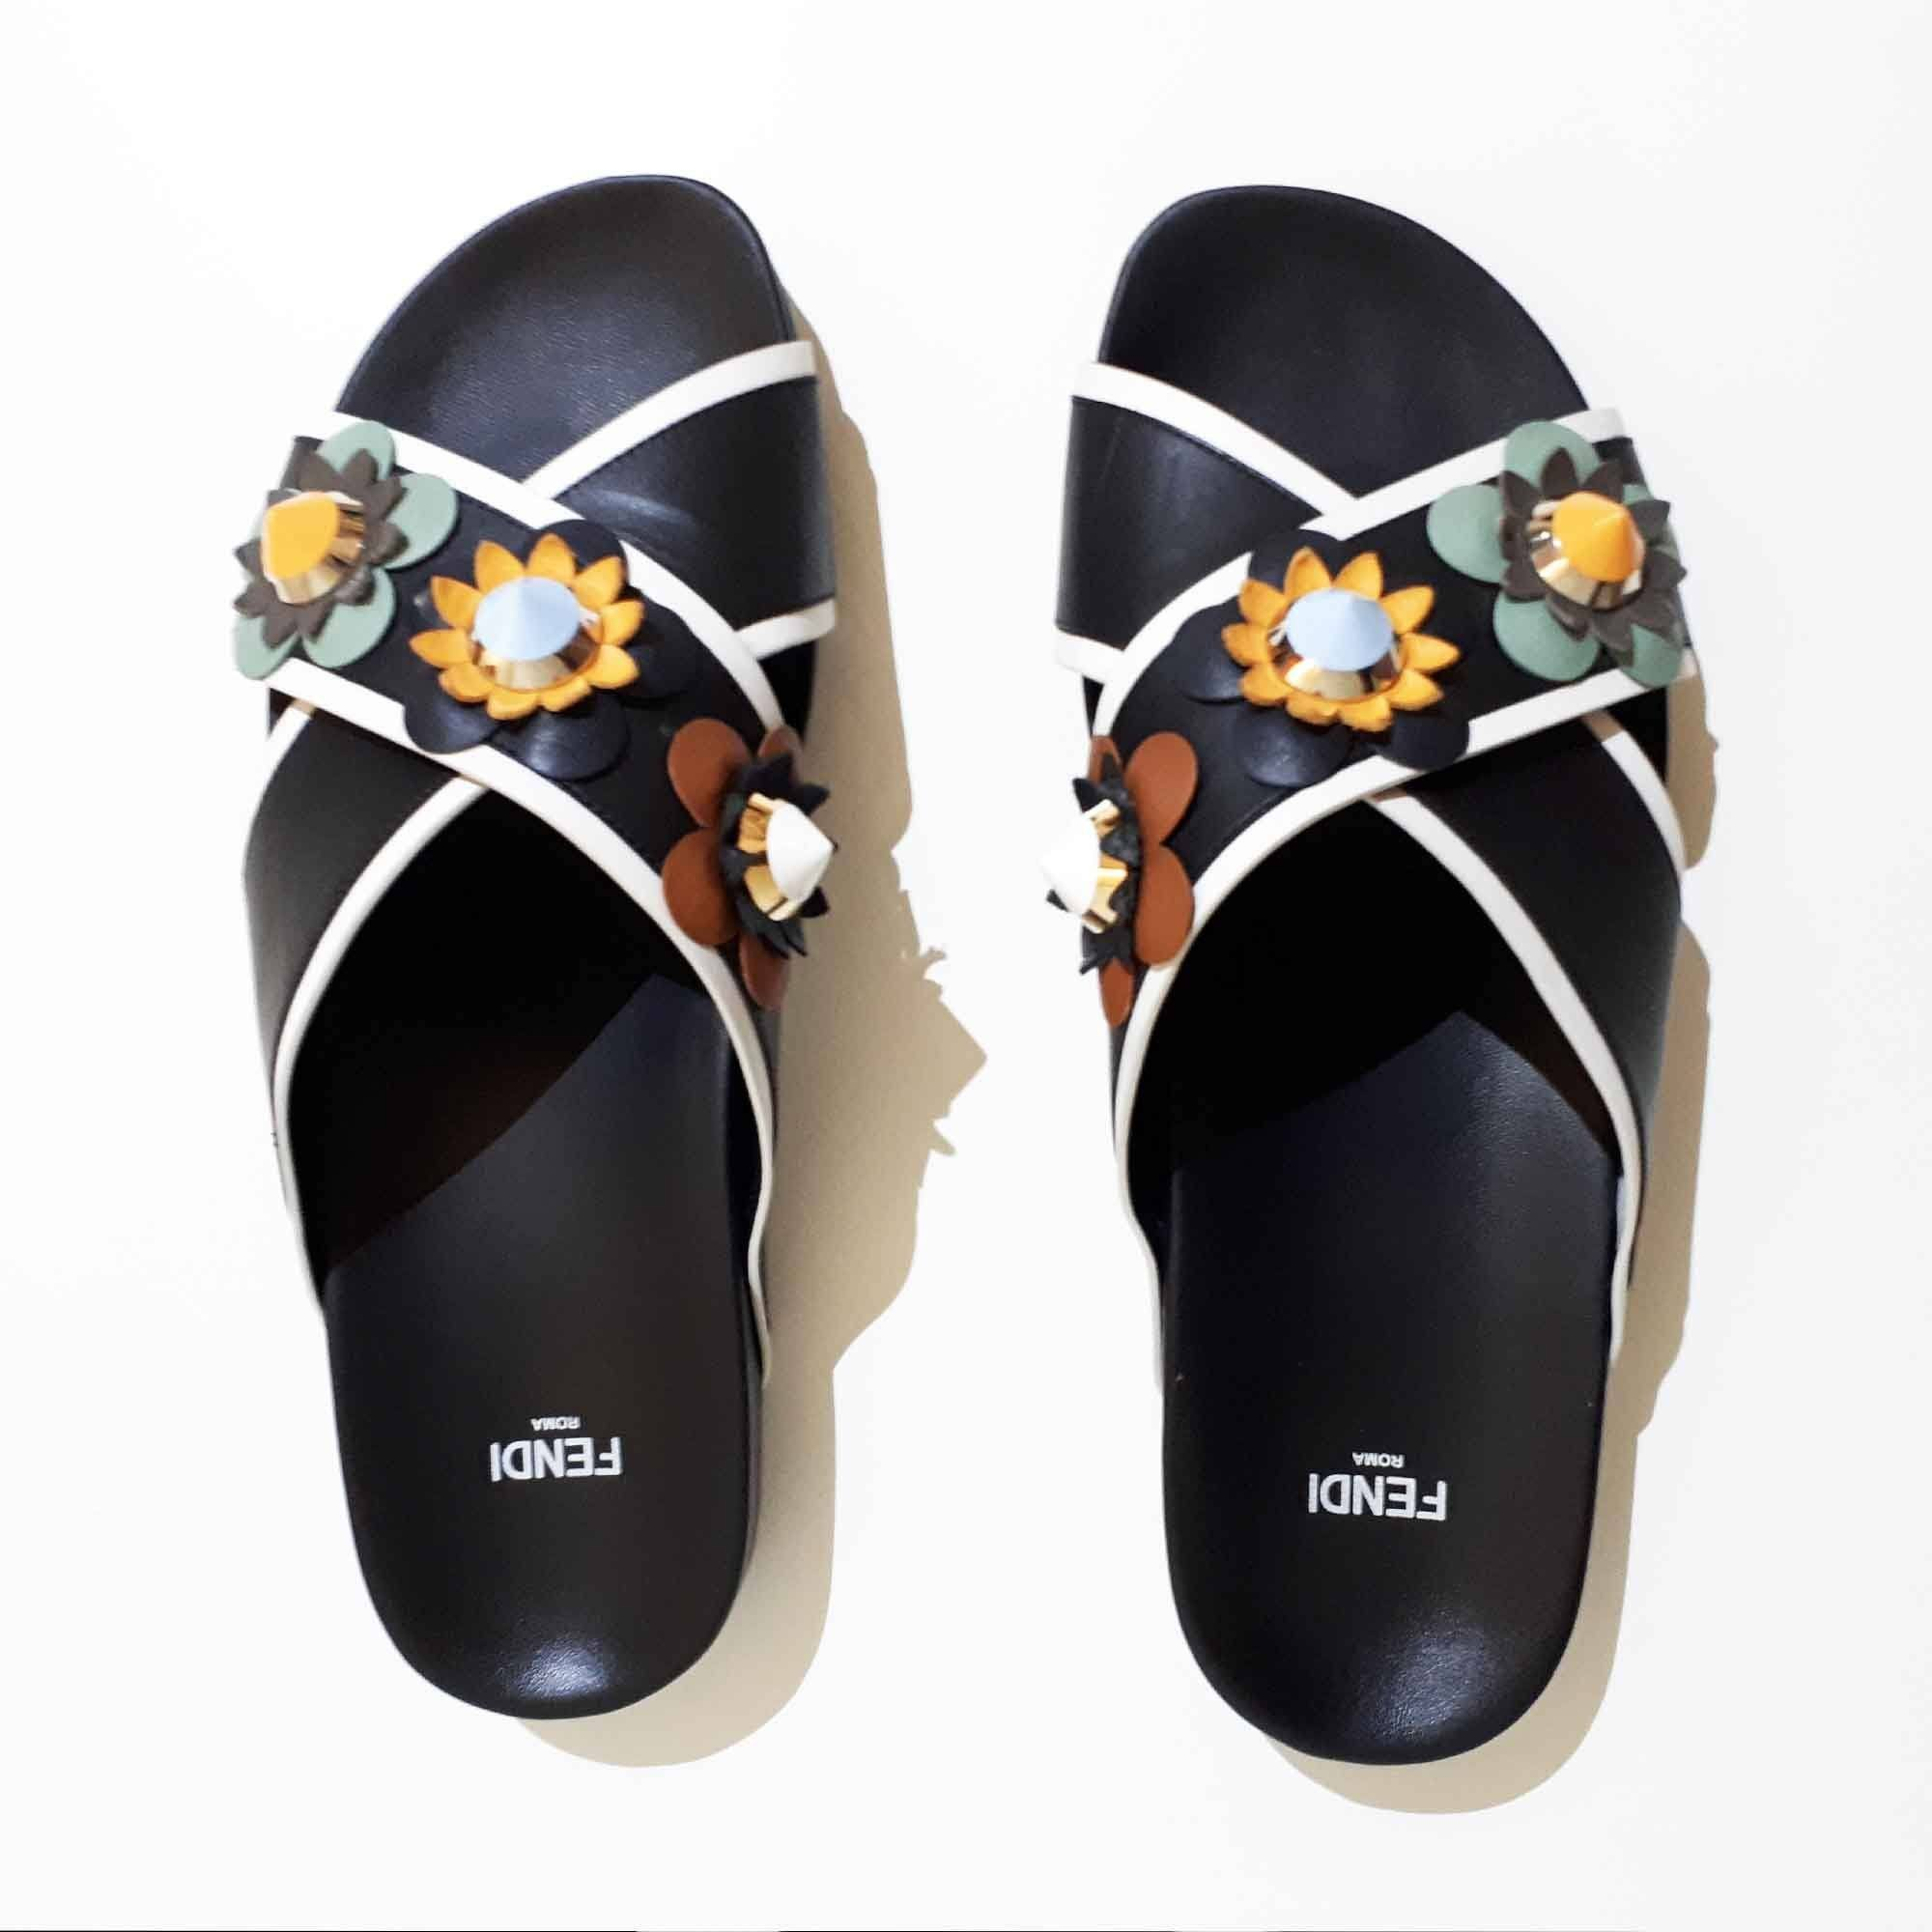 Fendi Black Leather Criss-Cross Sandals